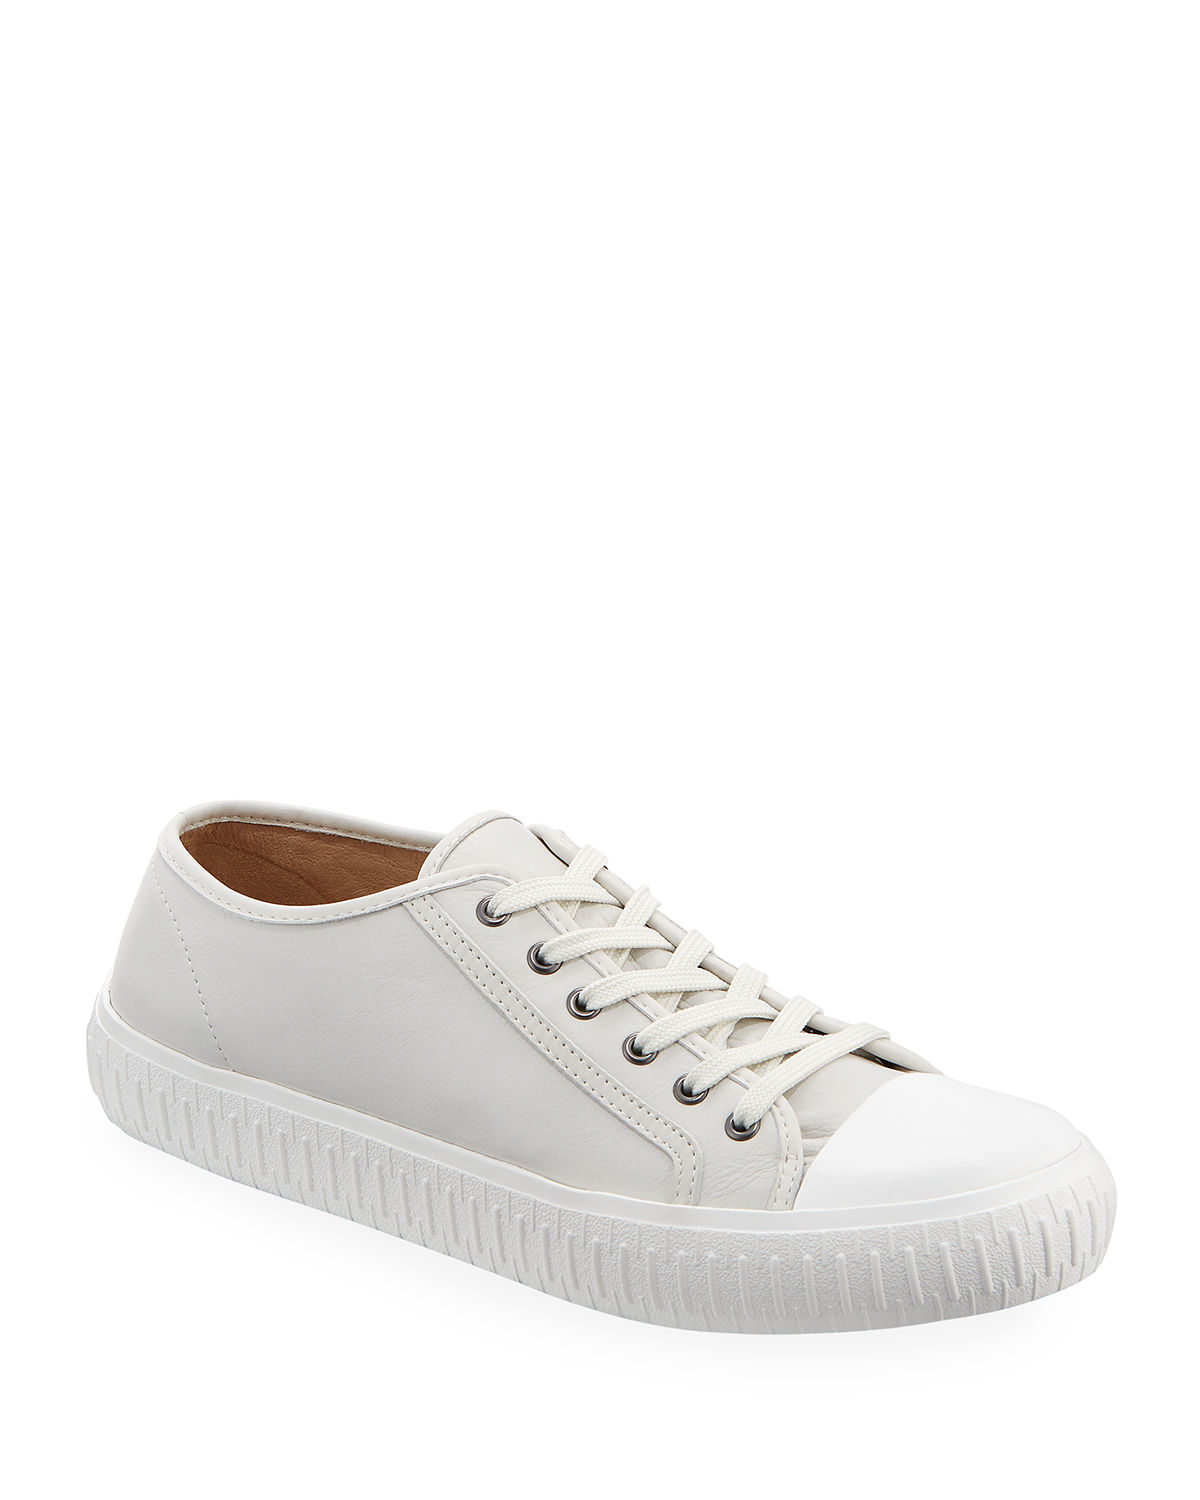 Nod Low-Top Leather Sneakers